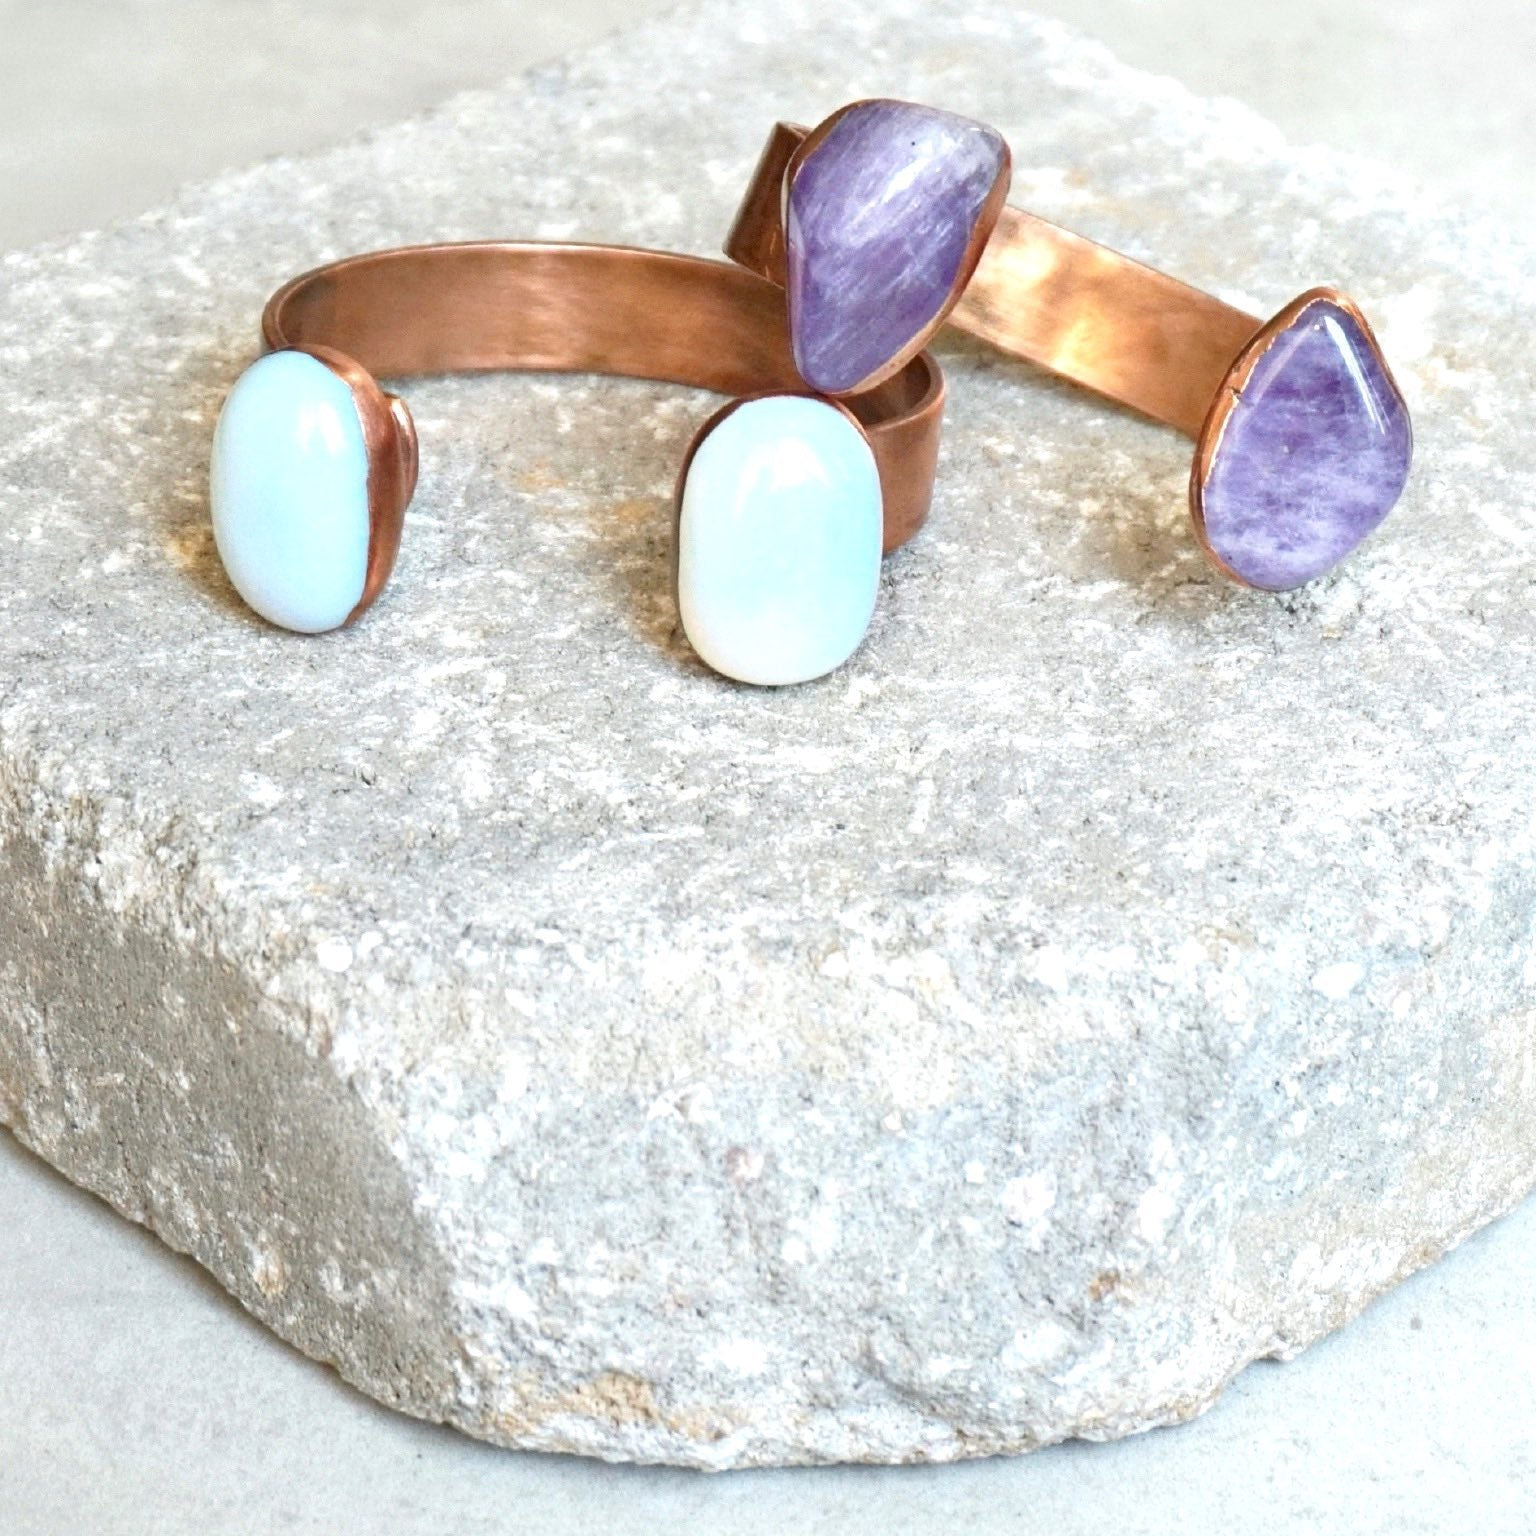 Turks and Caicos Crystal Cuff